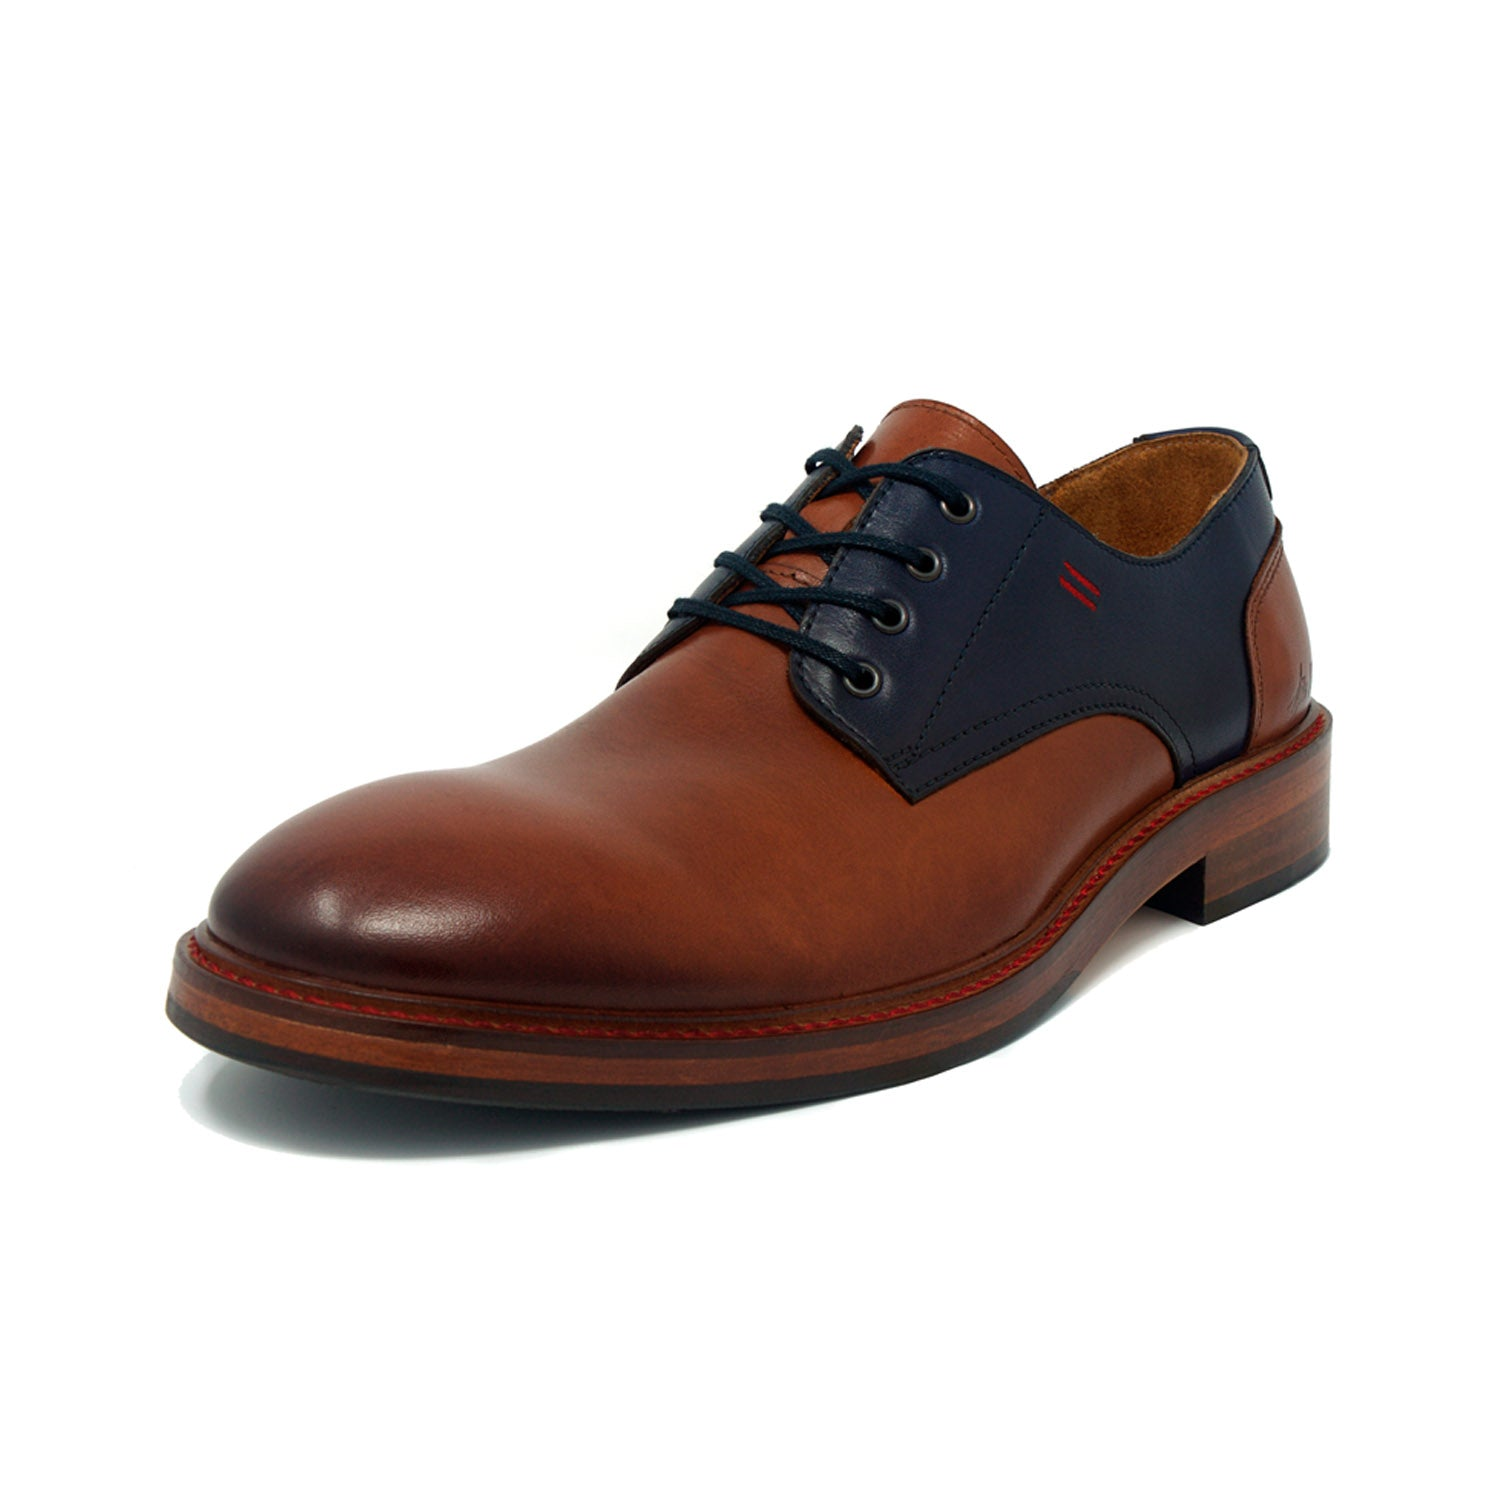 Versatile and Lux Classic Brown and Blue Two-Toned Derby's by NiK Kacy